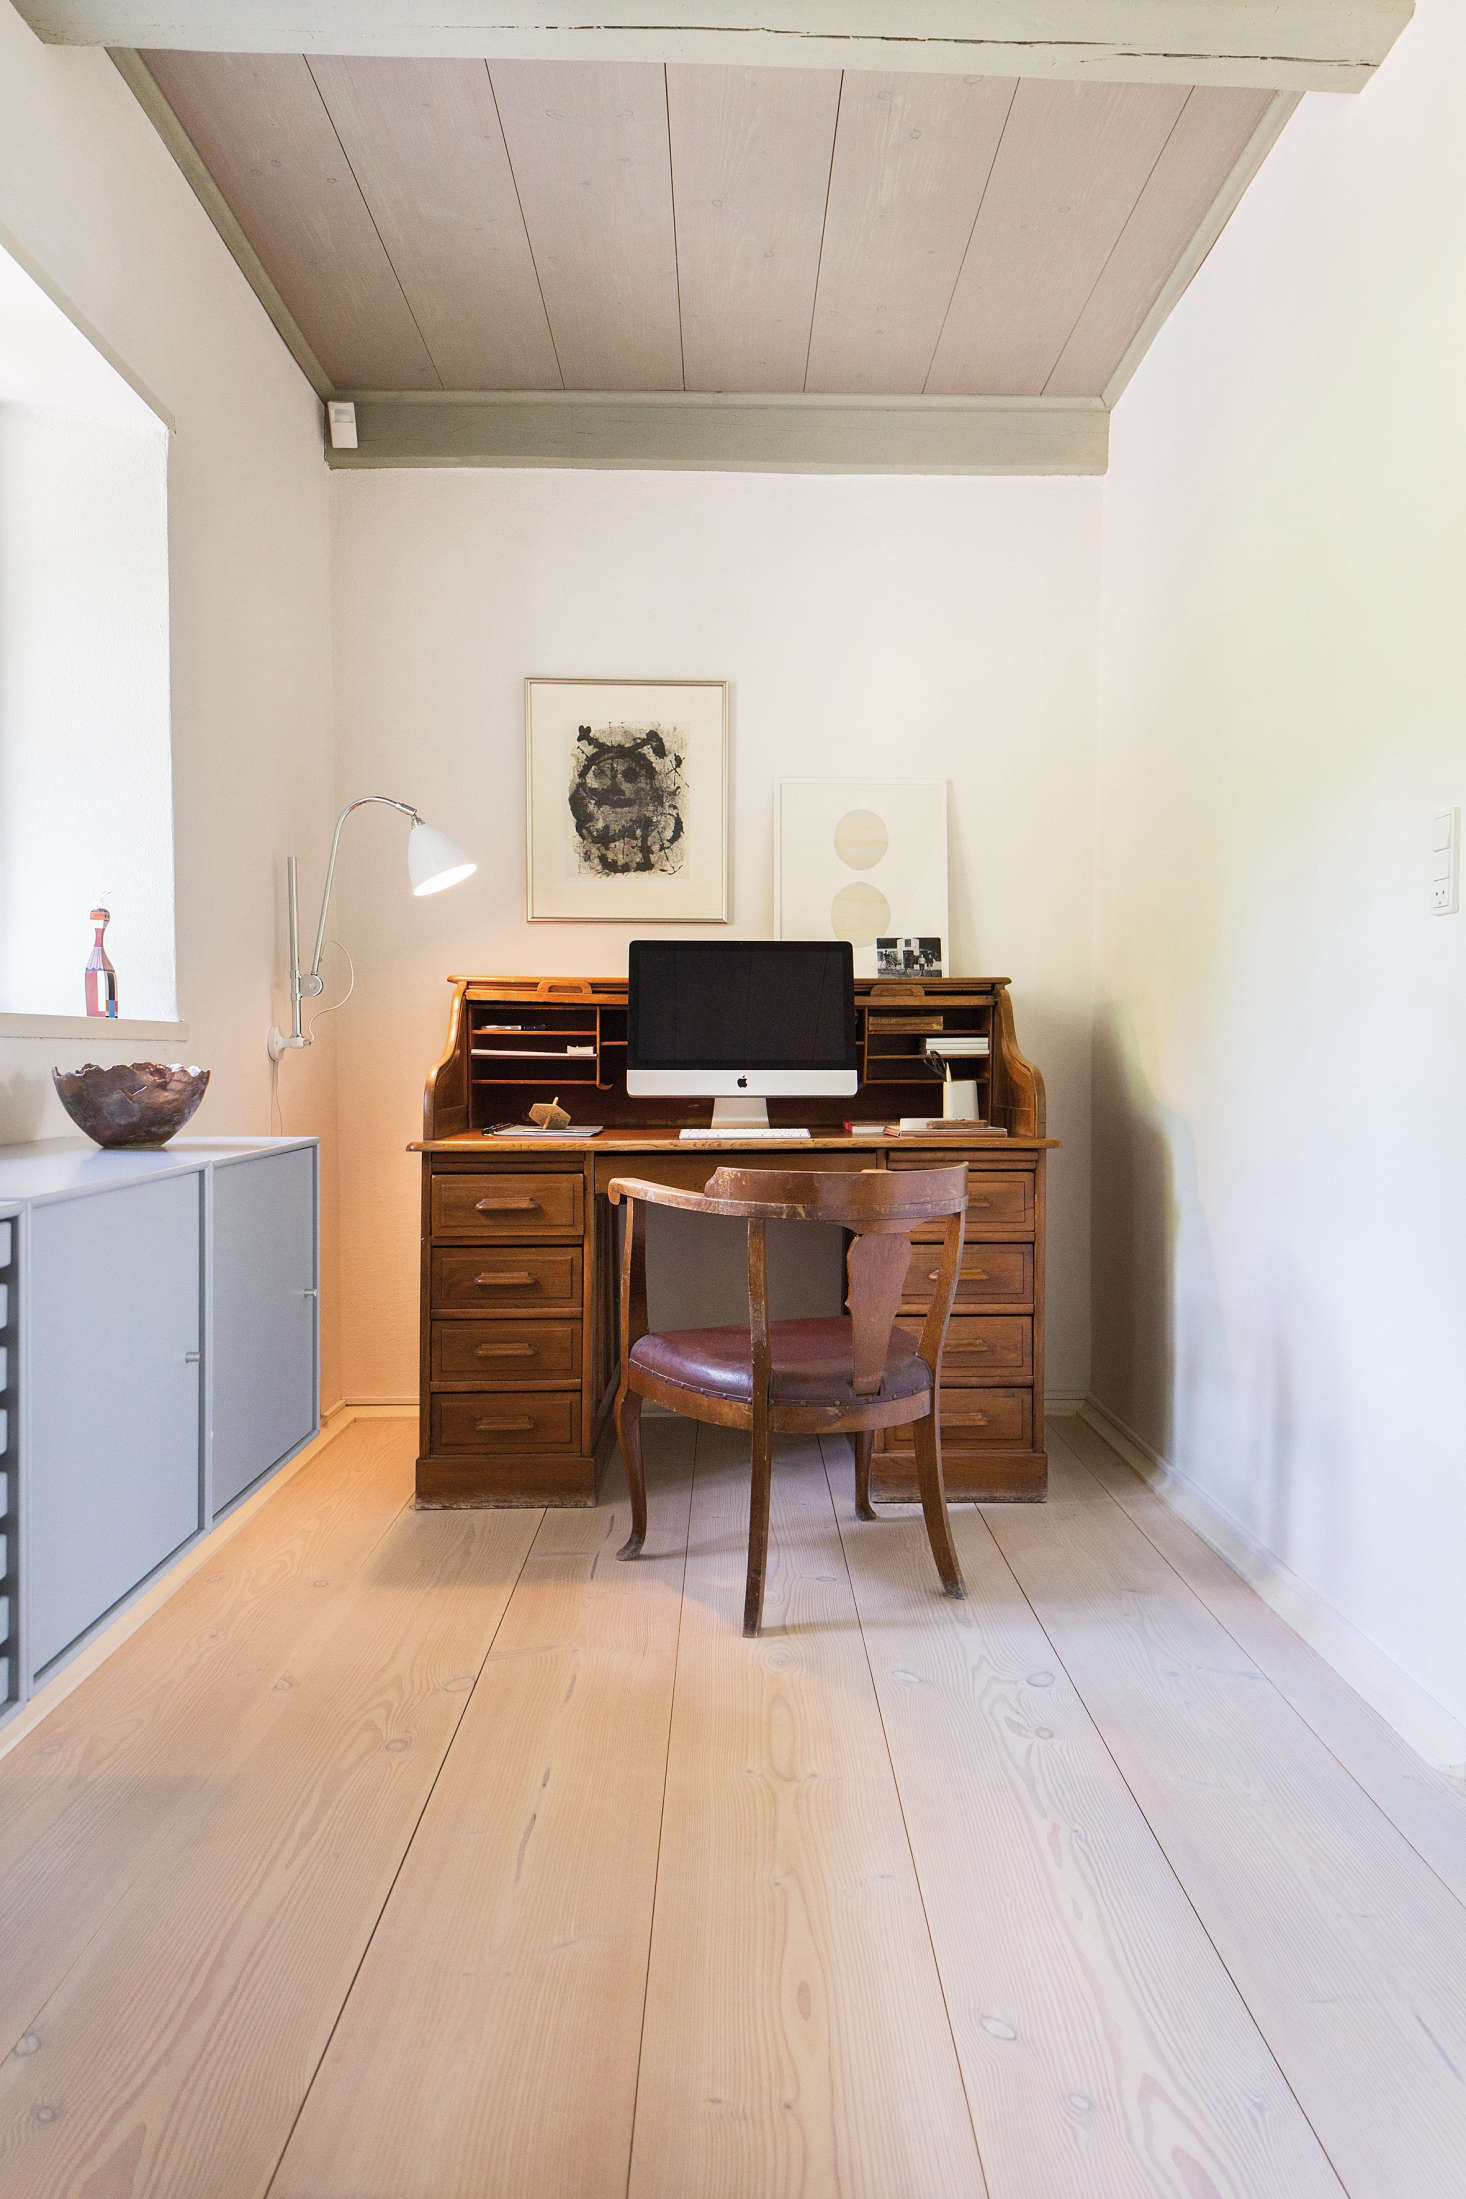 An old-fashioned secretary desk and vintage chair contrast nicely with modern pieces. Photograph courtesy of Dinesen, from The Dinesen Family House: A Historic Renovation for Danish Design Royalty.